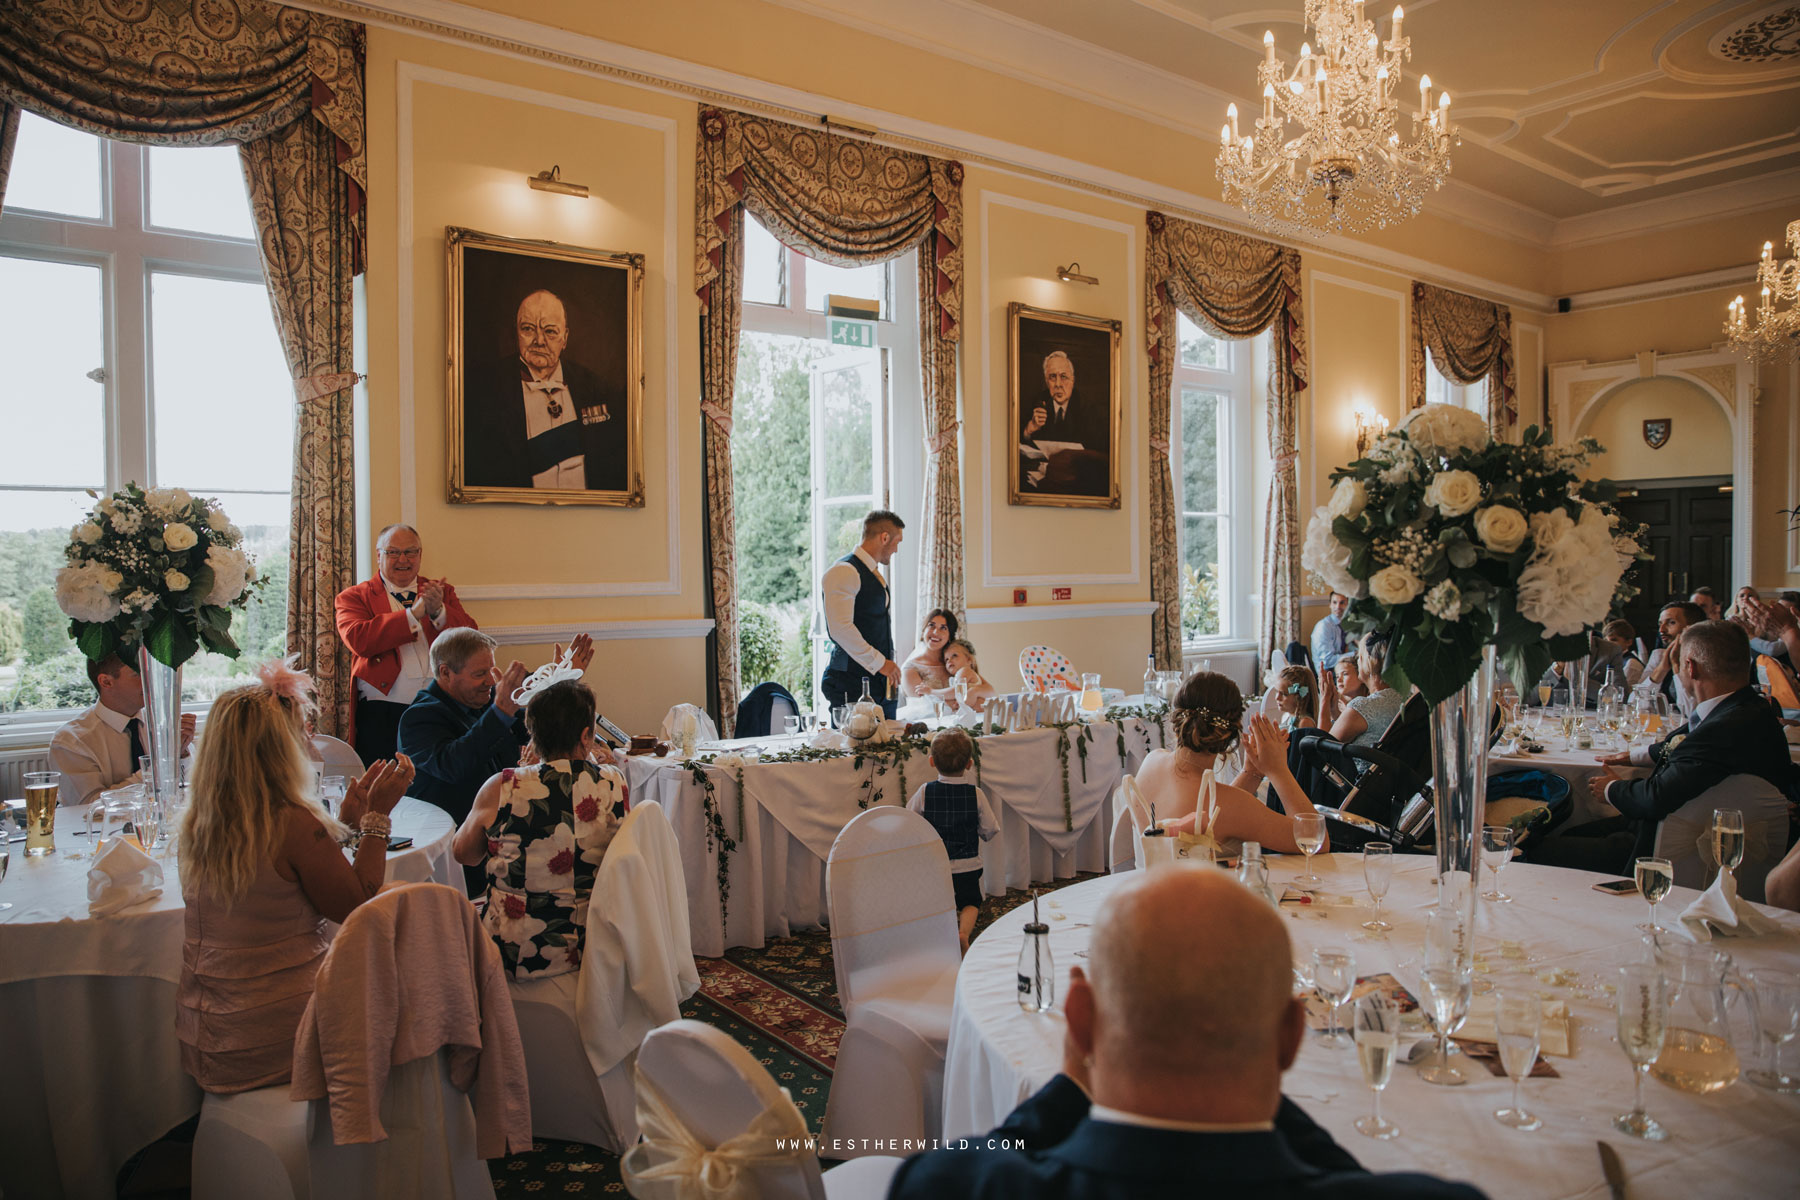 Lynford_Hall_Wedding_Thetford_Mundford_Esther_Wild_Photographer_IMG_2530.jpg